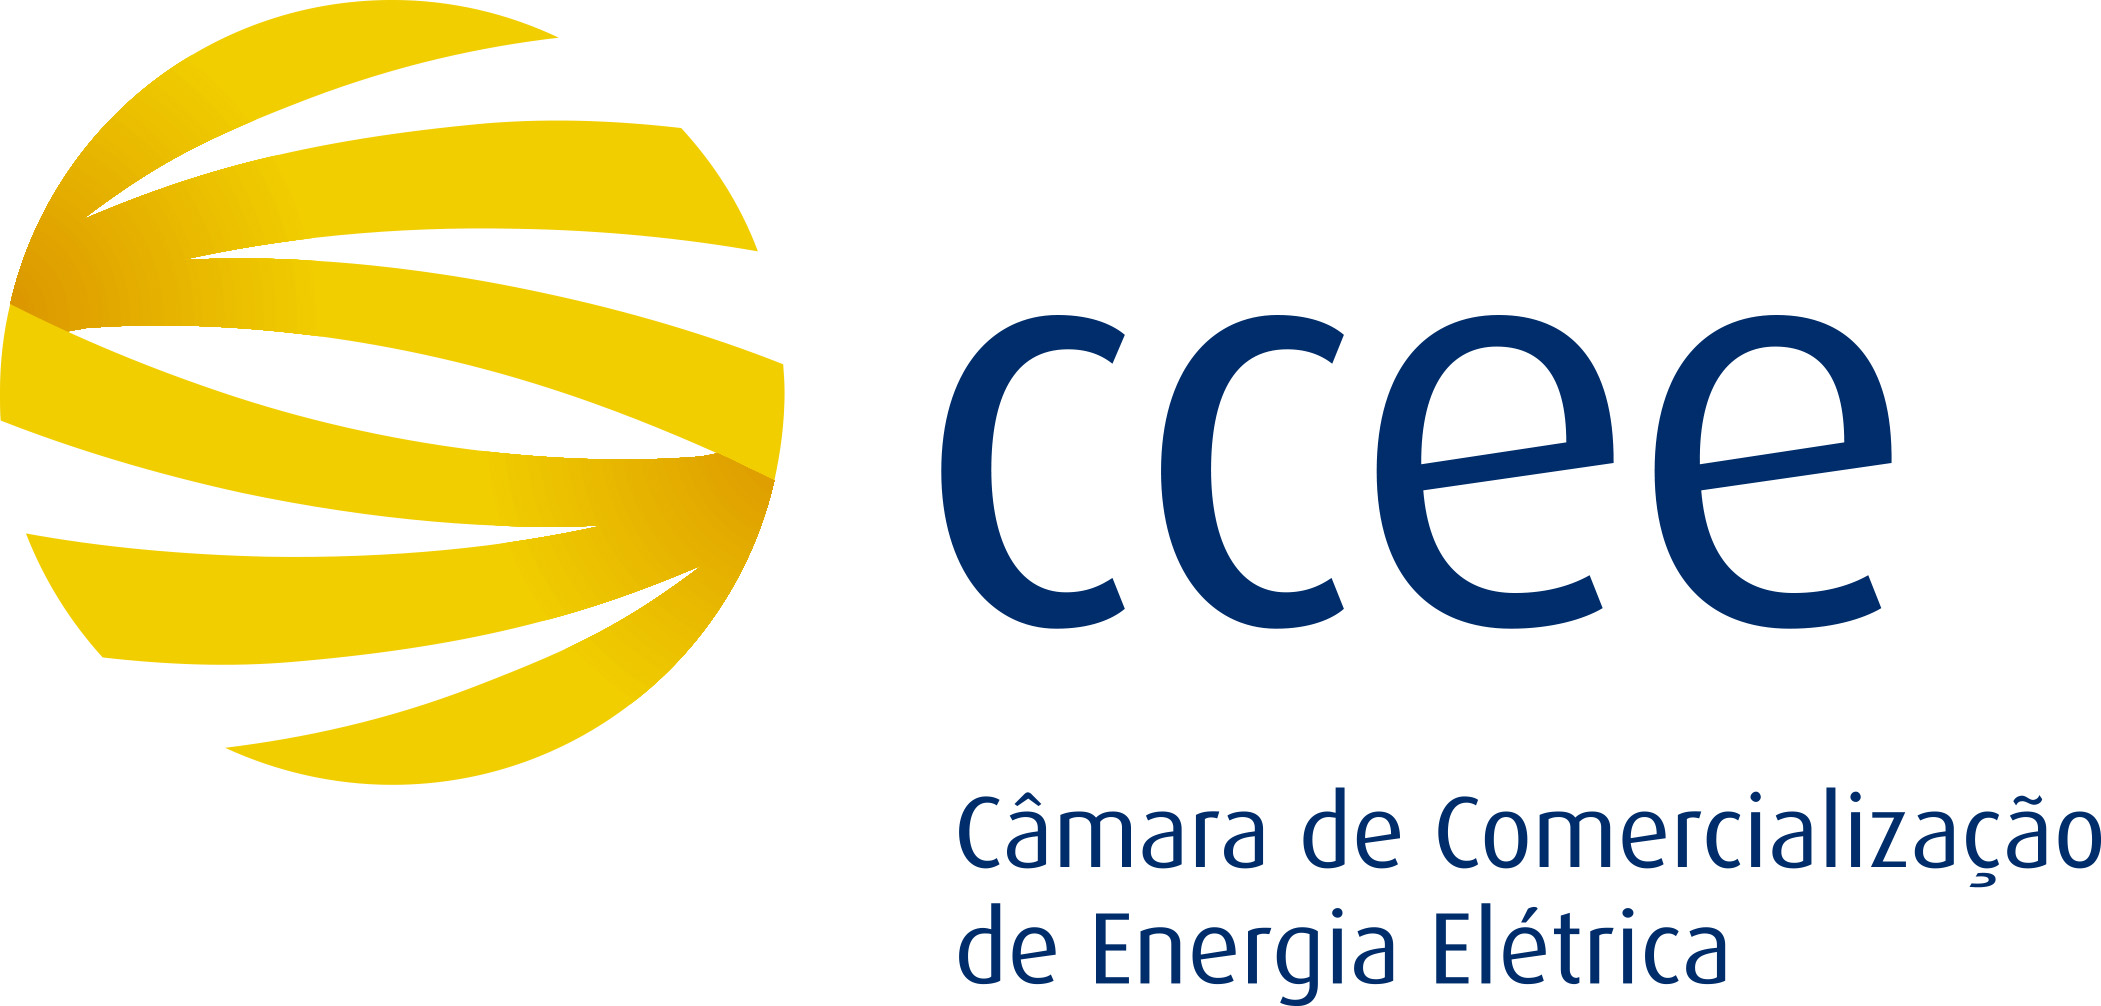 ccee_logo